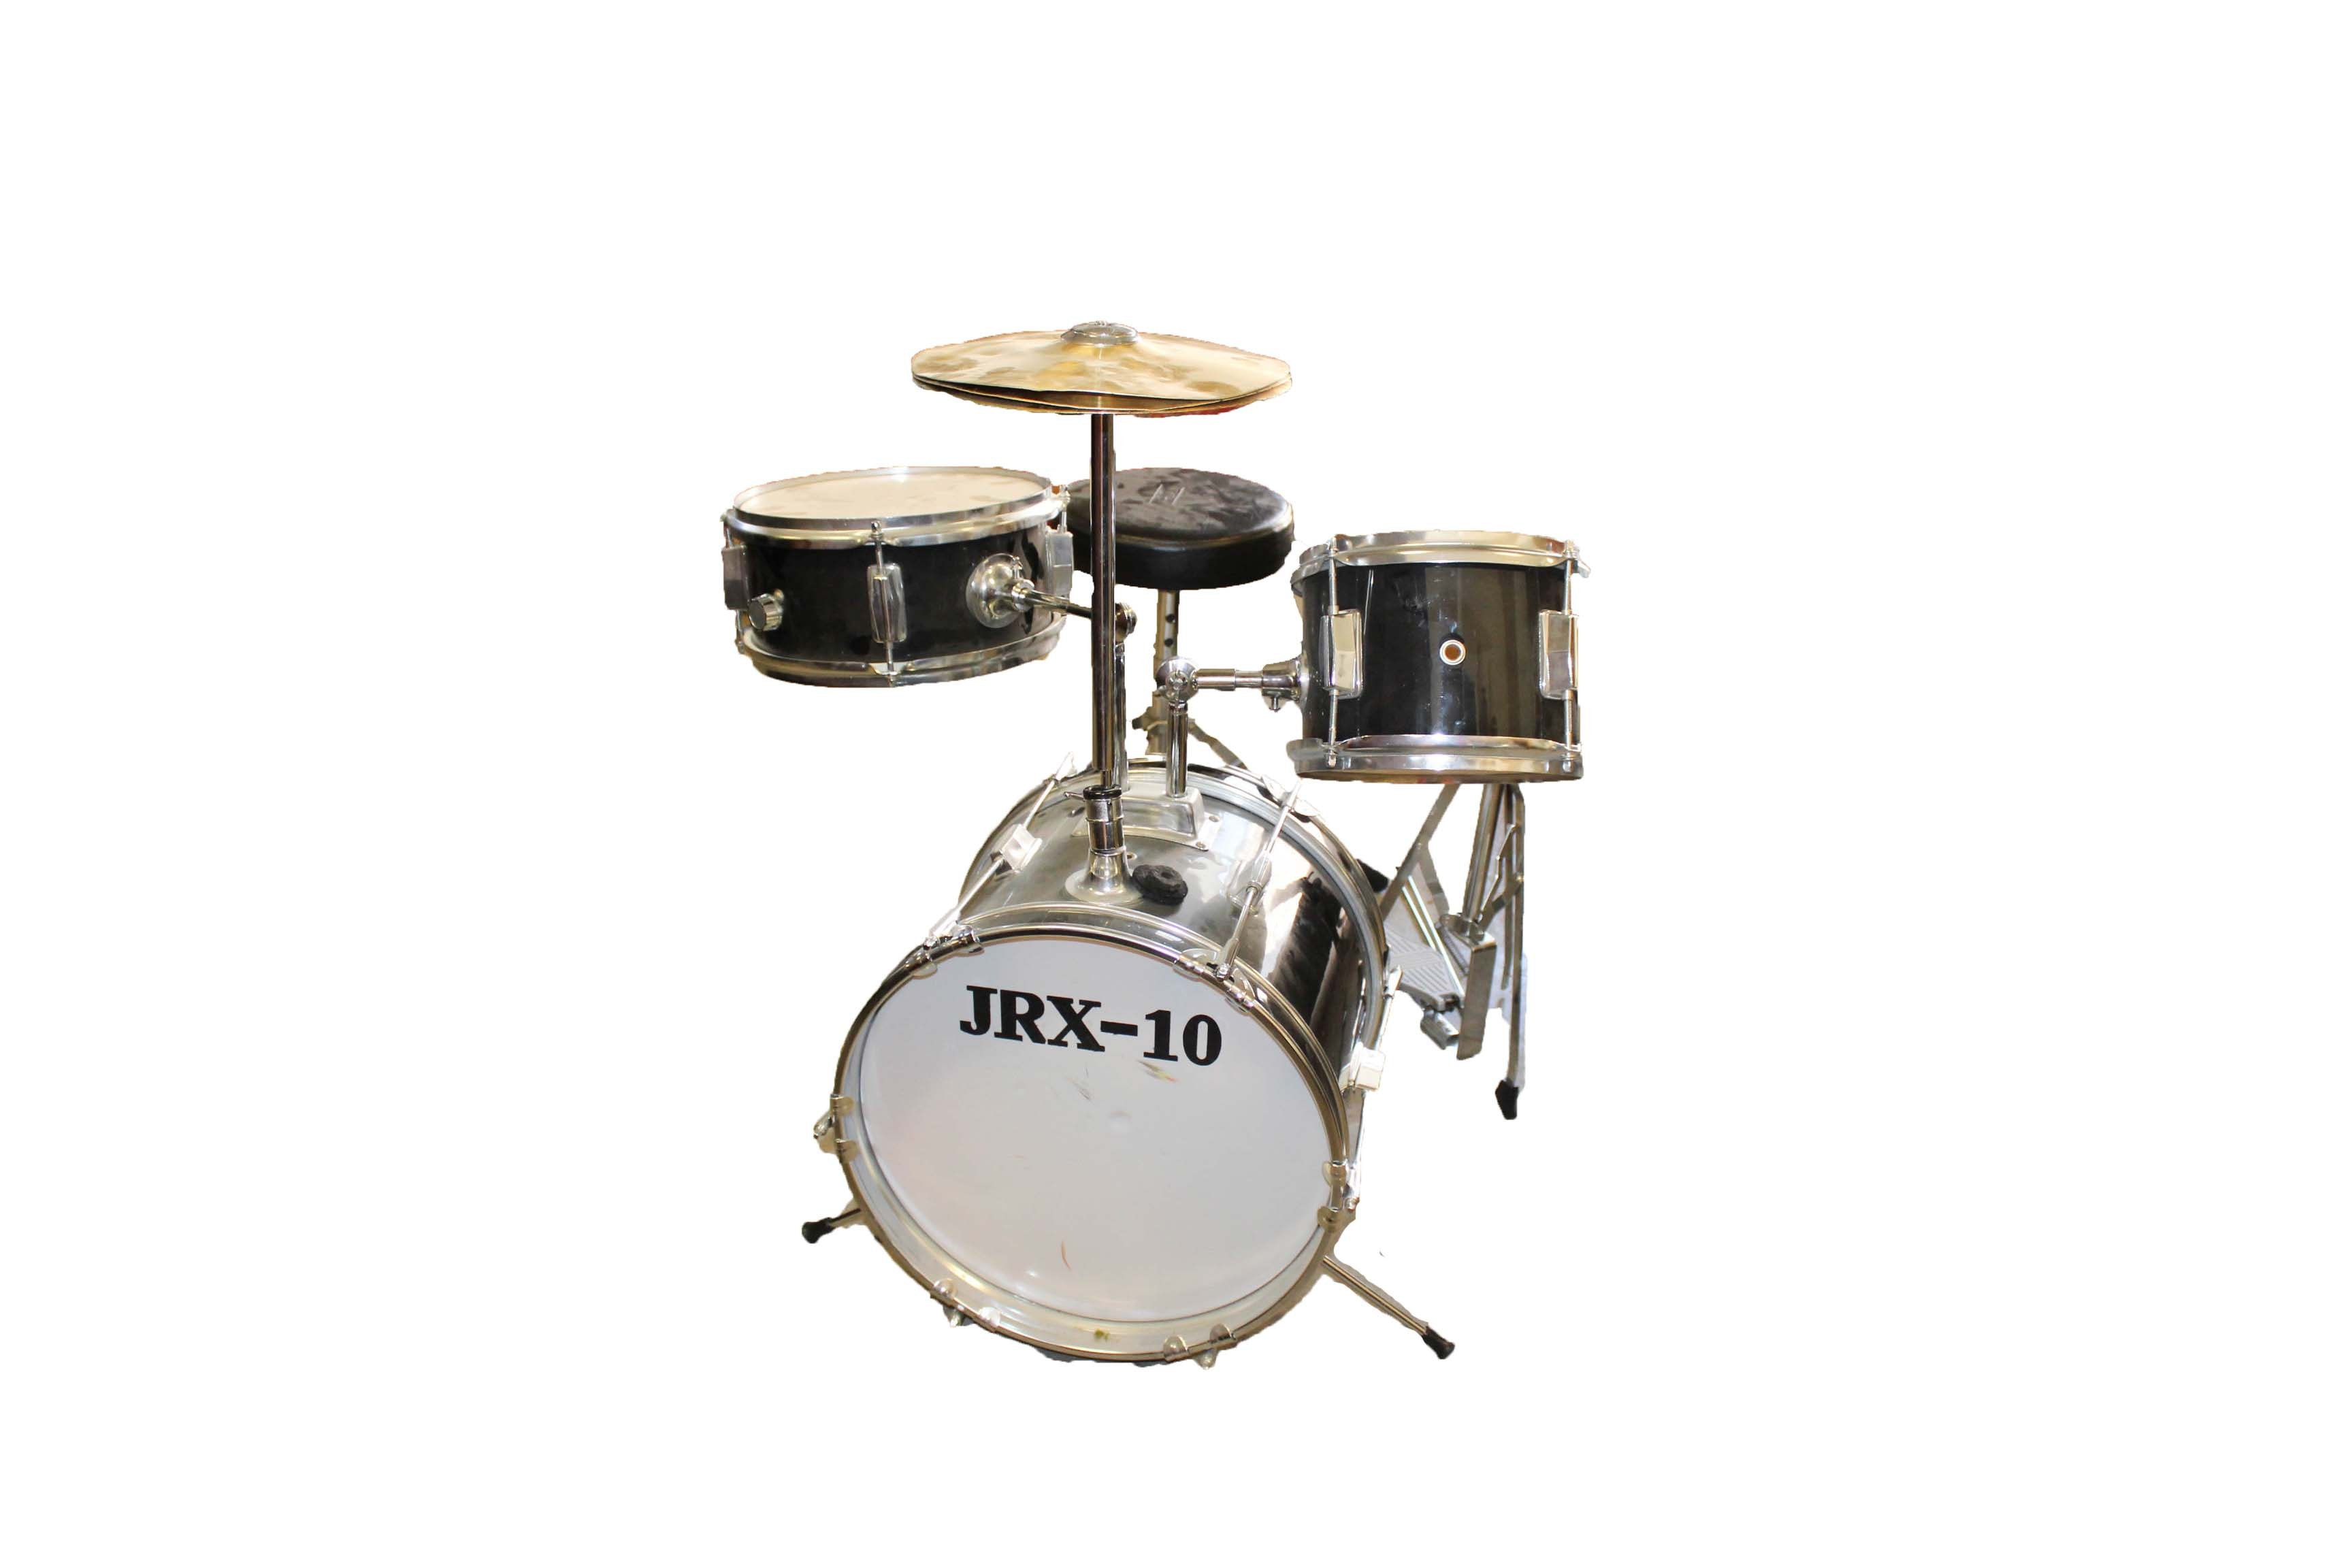 JRX-10 Junior Sized Drum Kit